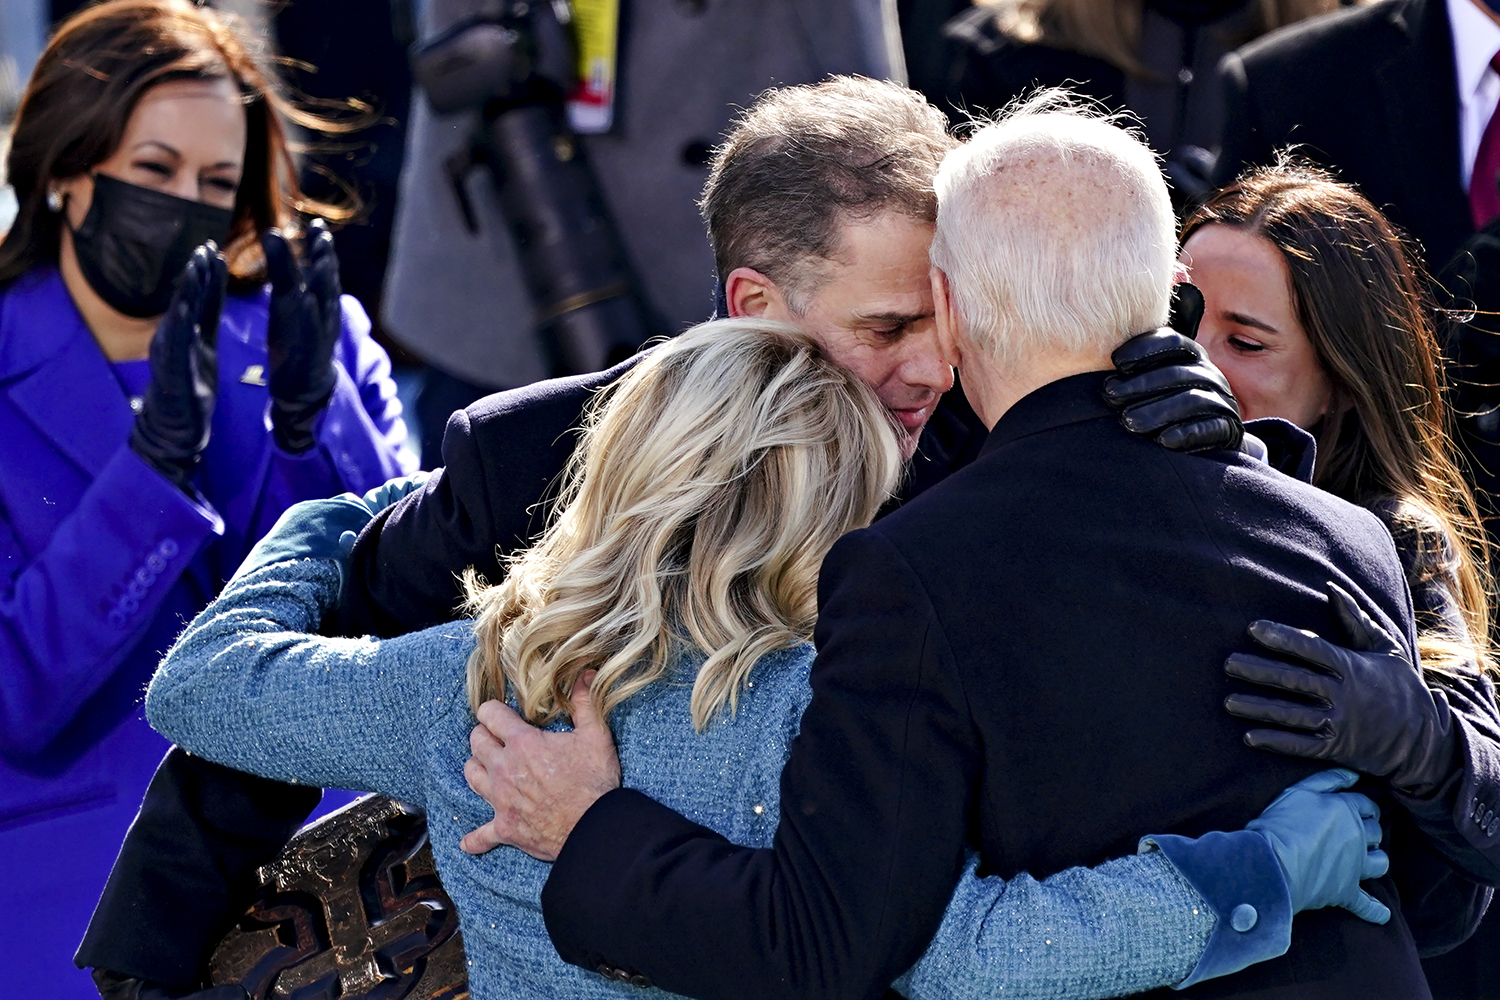 U.S. President Joe Biden, right, is embraced by his son Hunter Biden and first lady Jill Biden after being sworn in at his presidential inauguration in Washington on Jan. 20. KEVIN DIETSCH/POOL/AFP via Getty Images